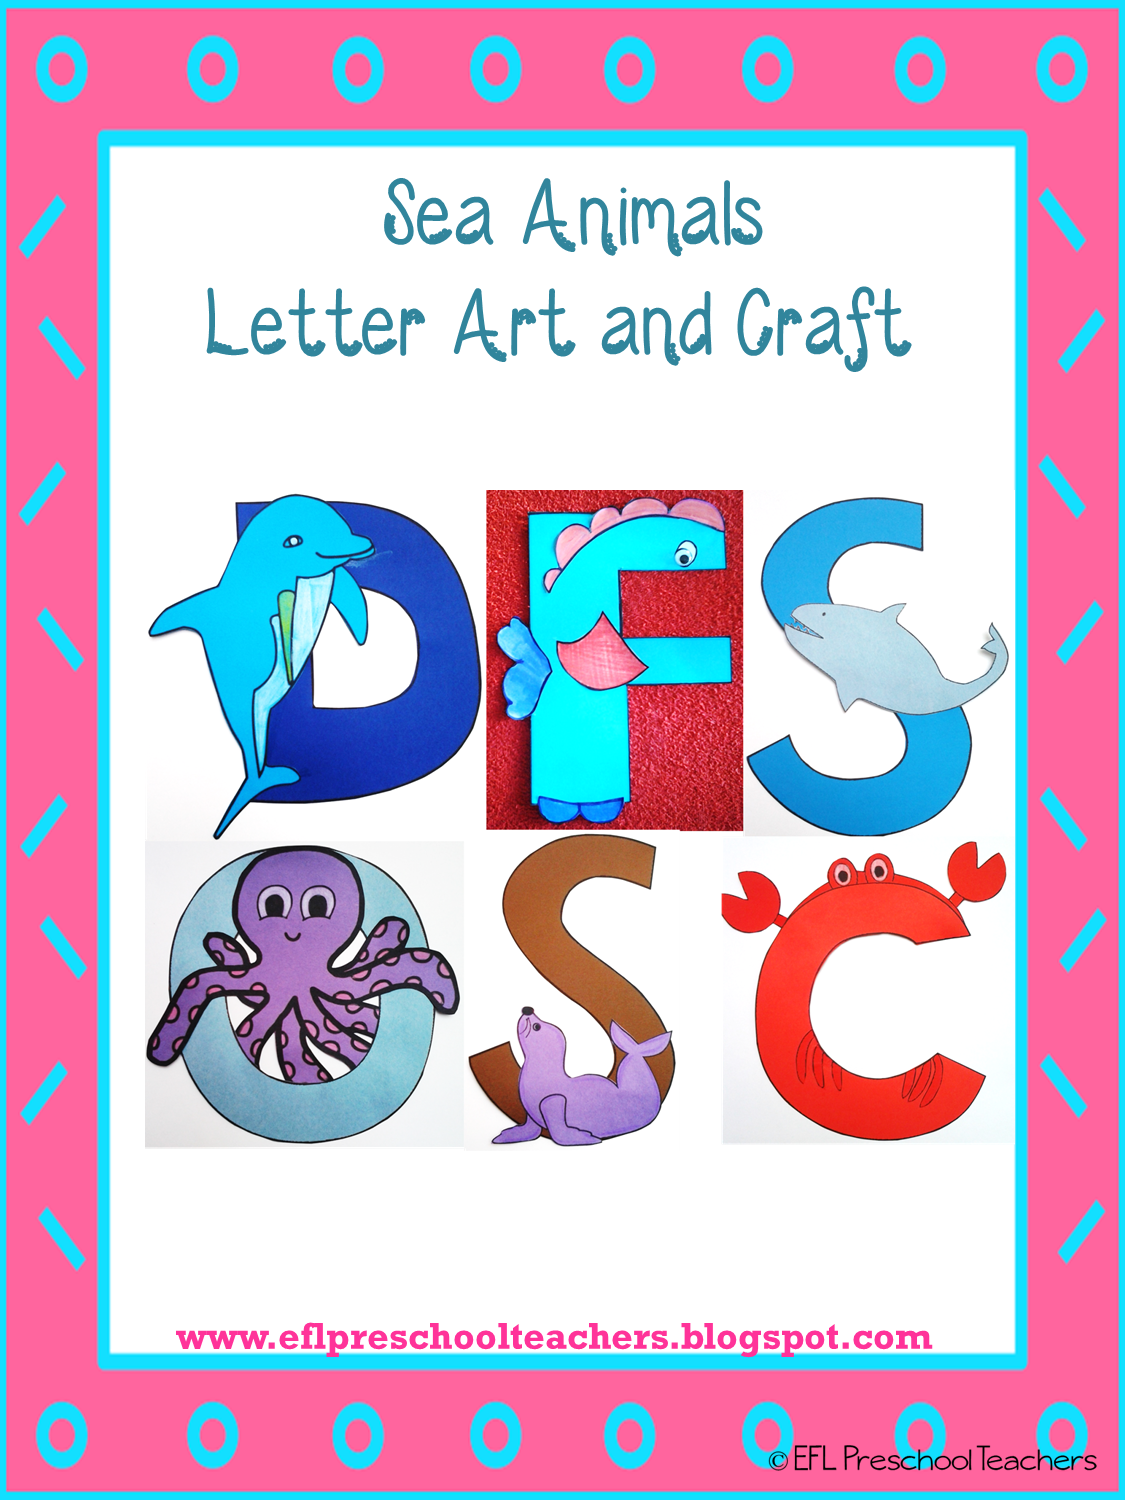 We Are Sea Animals Teacher S Pinterest Favorite Animal